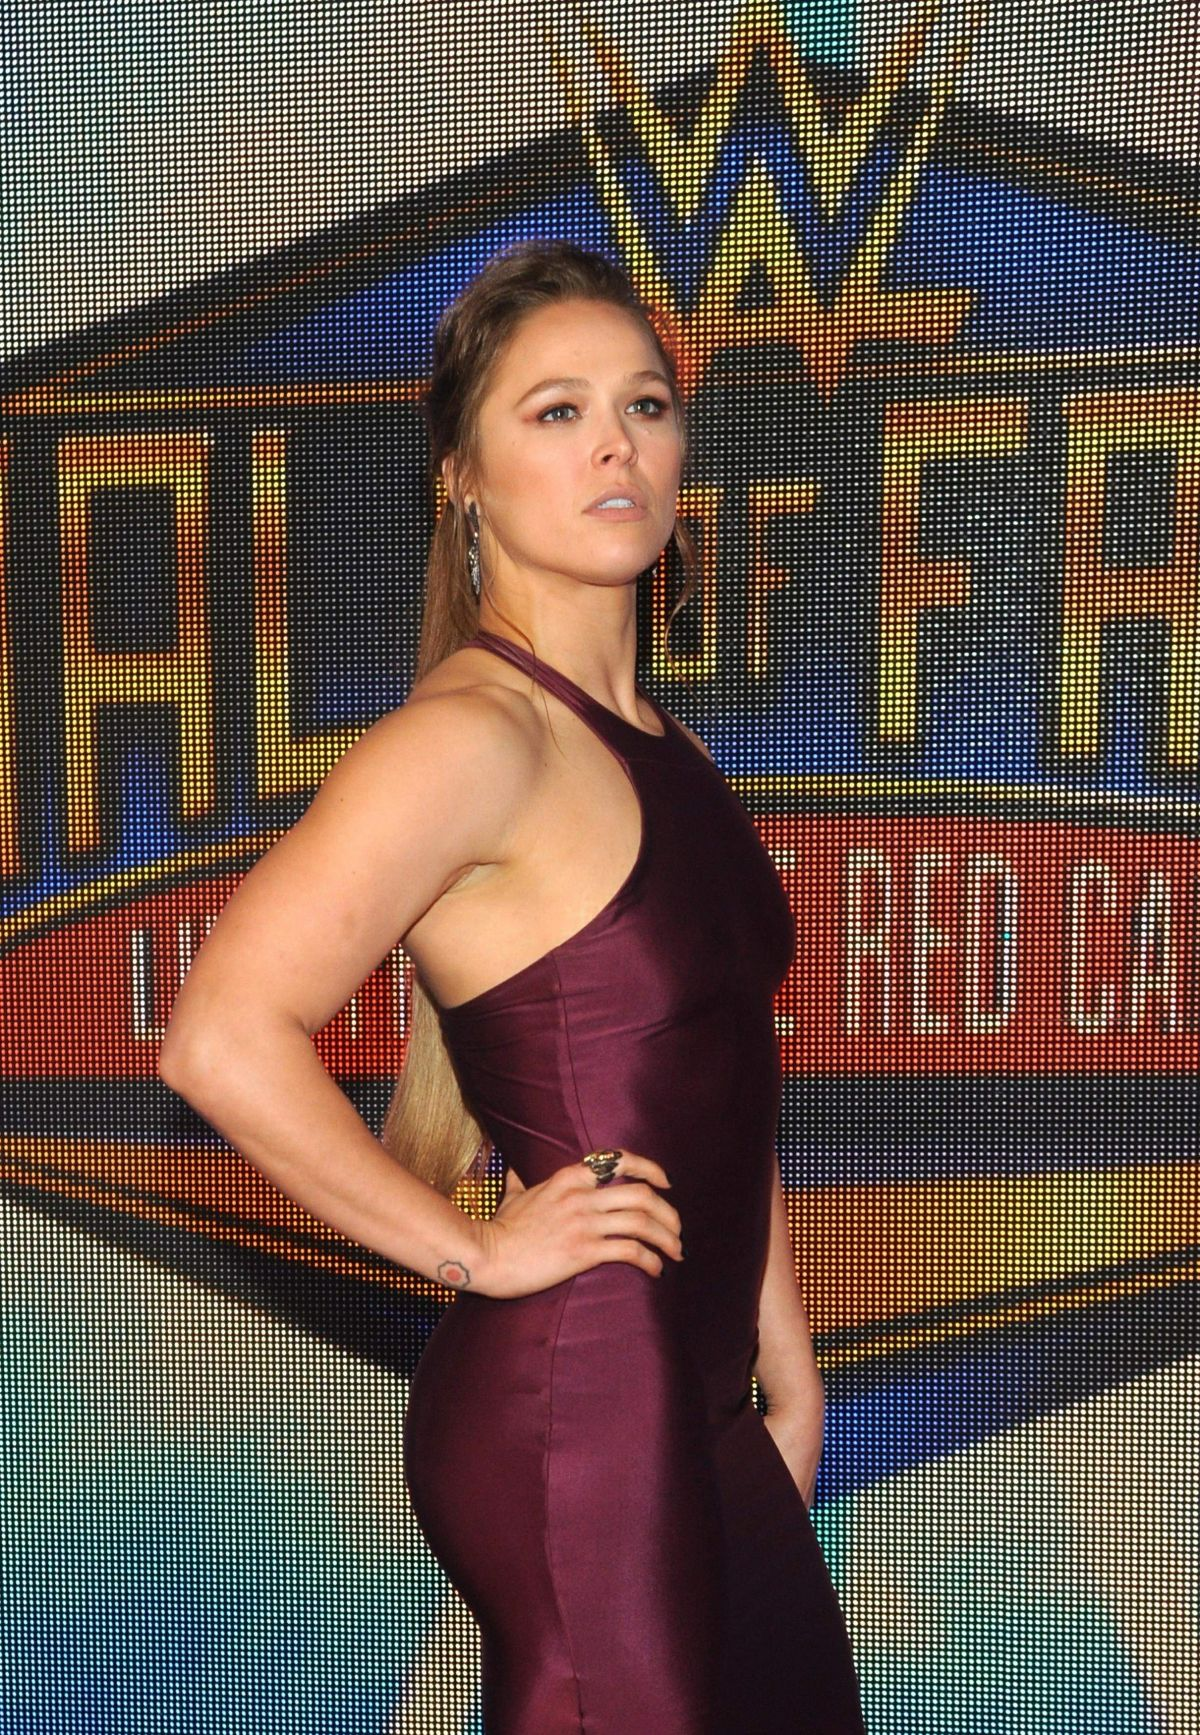 Ronda Rousey At Wwe 2018 Hall Of Fame Induction Ceremony